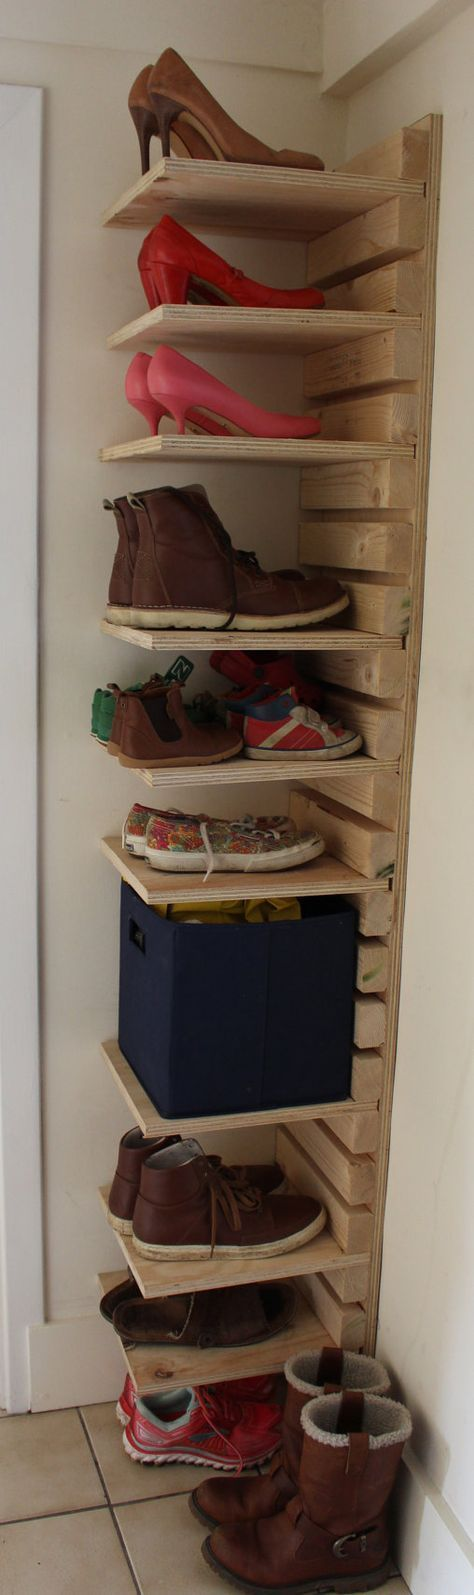 Ideas for woodworking 8 # woodworking …